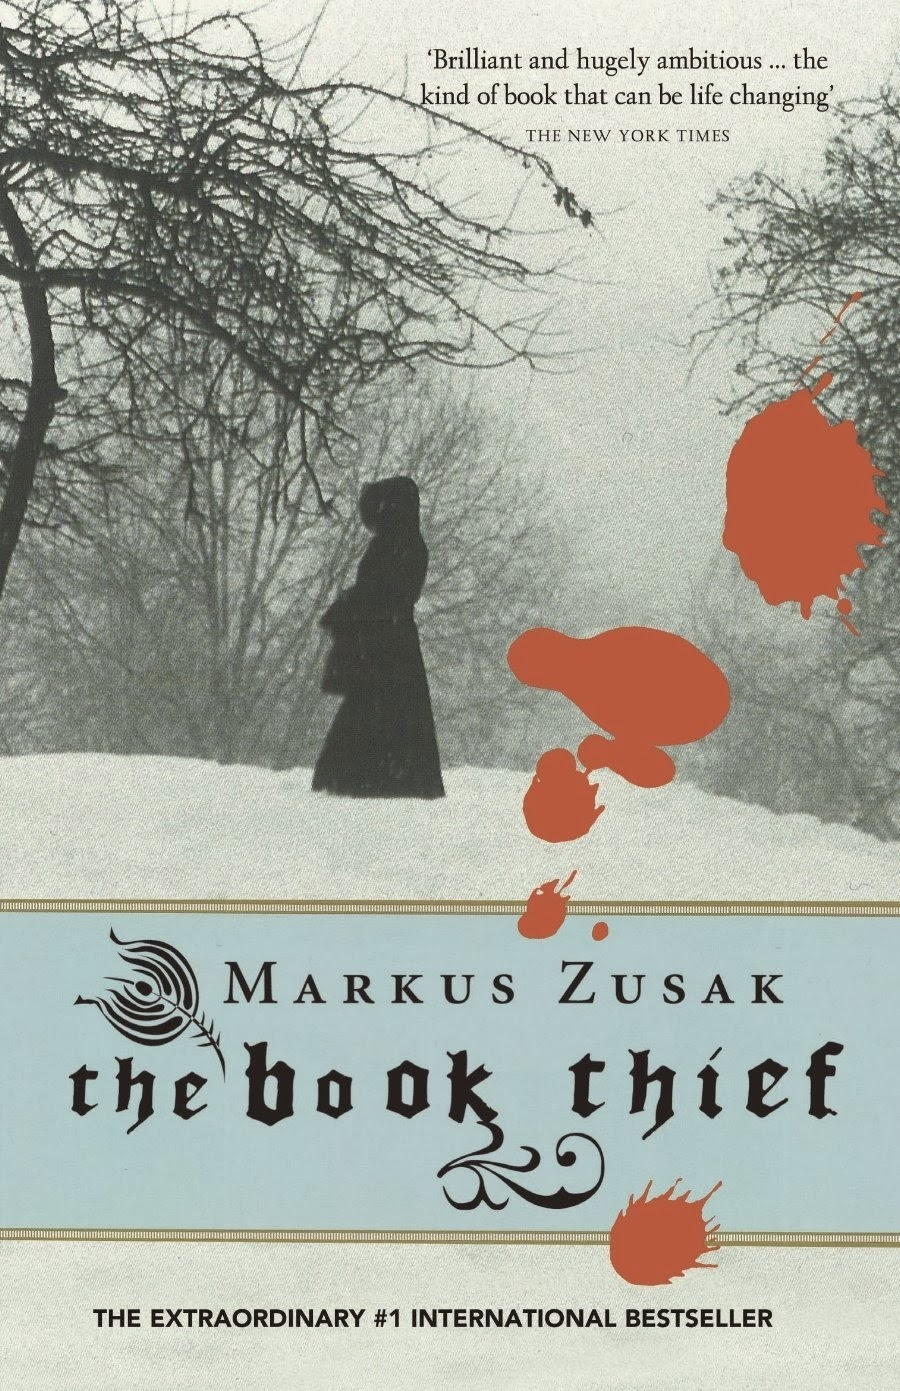 reading for the business of writing by fiona inglis 2013 koala honour the book thief by markus zusak